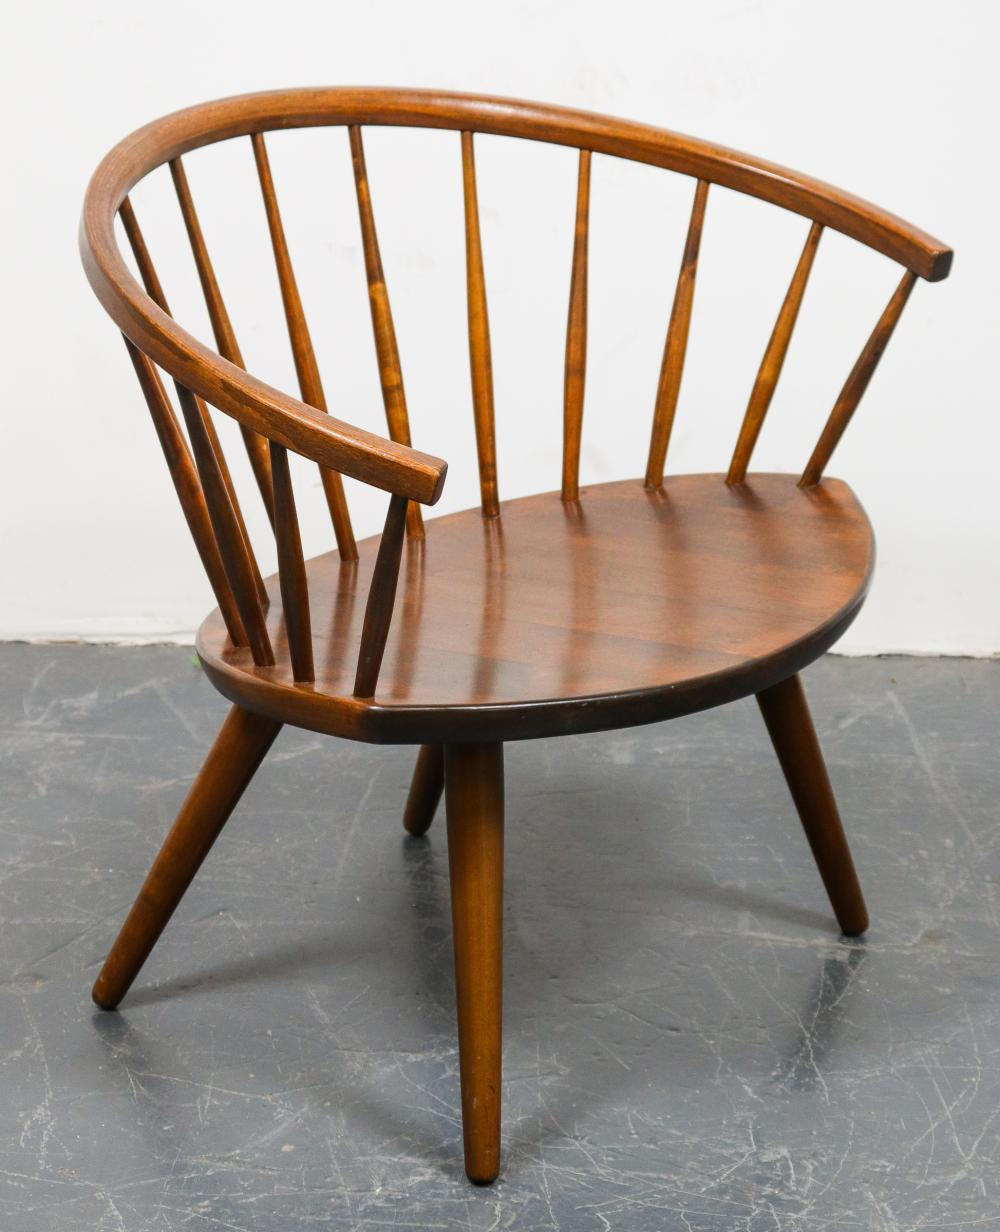 Sold Price Danish Modern Spindle Back Chair Invalid Date Edt